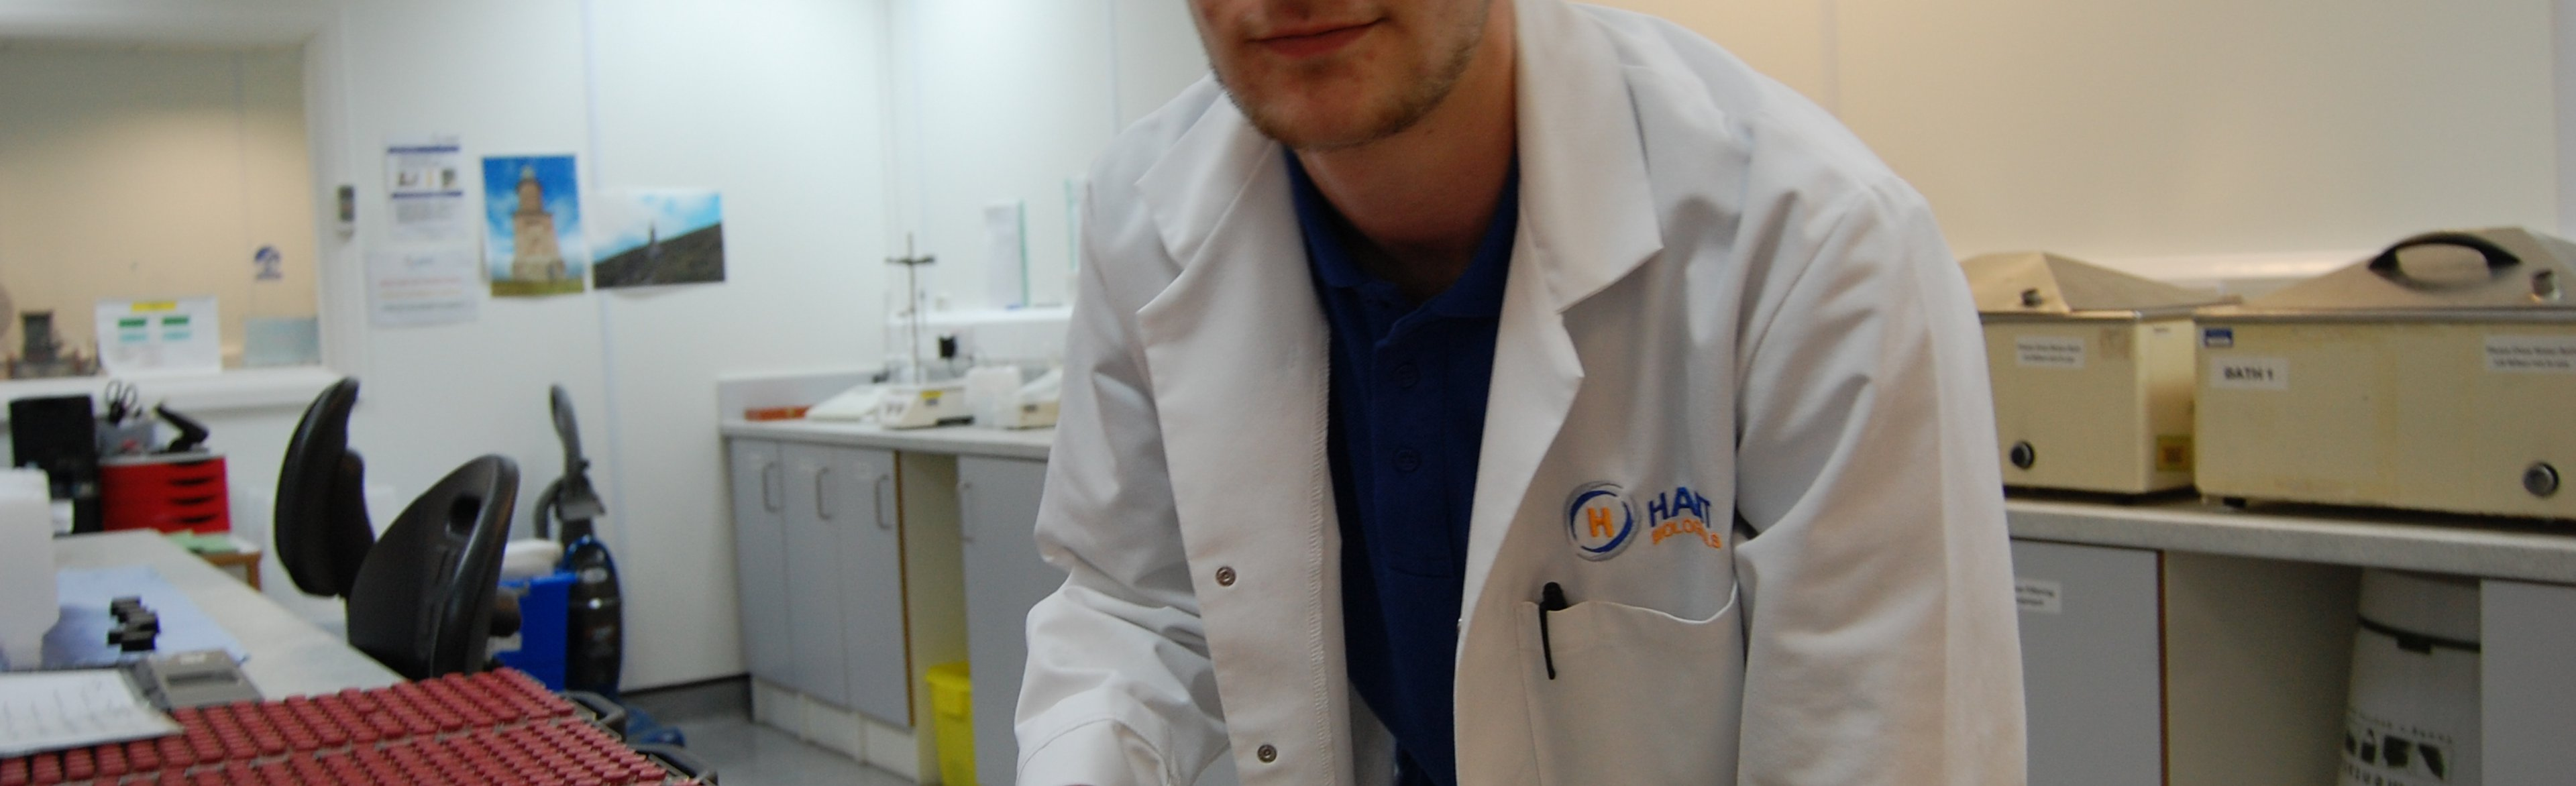 Apprentices shine at Hart Biologicals Image